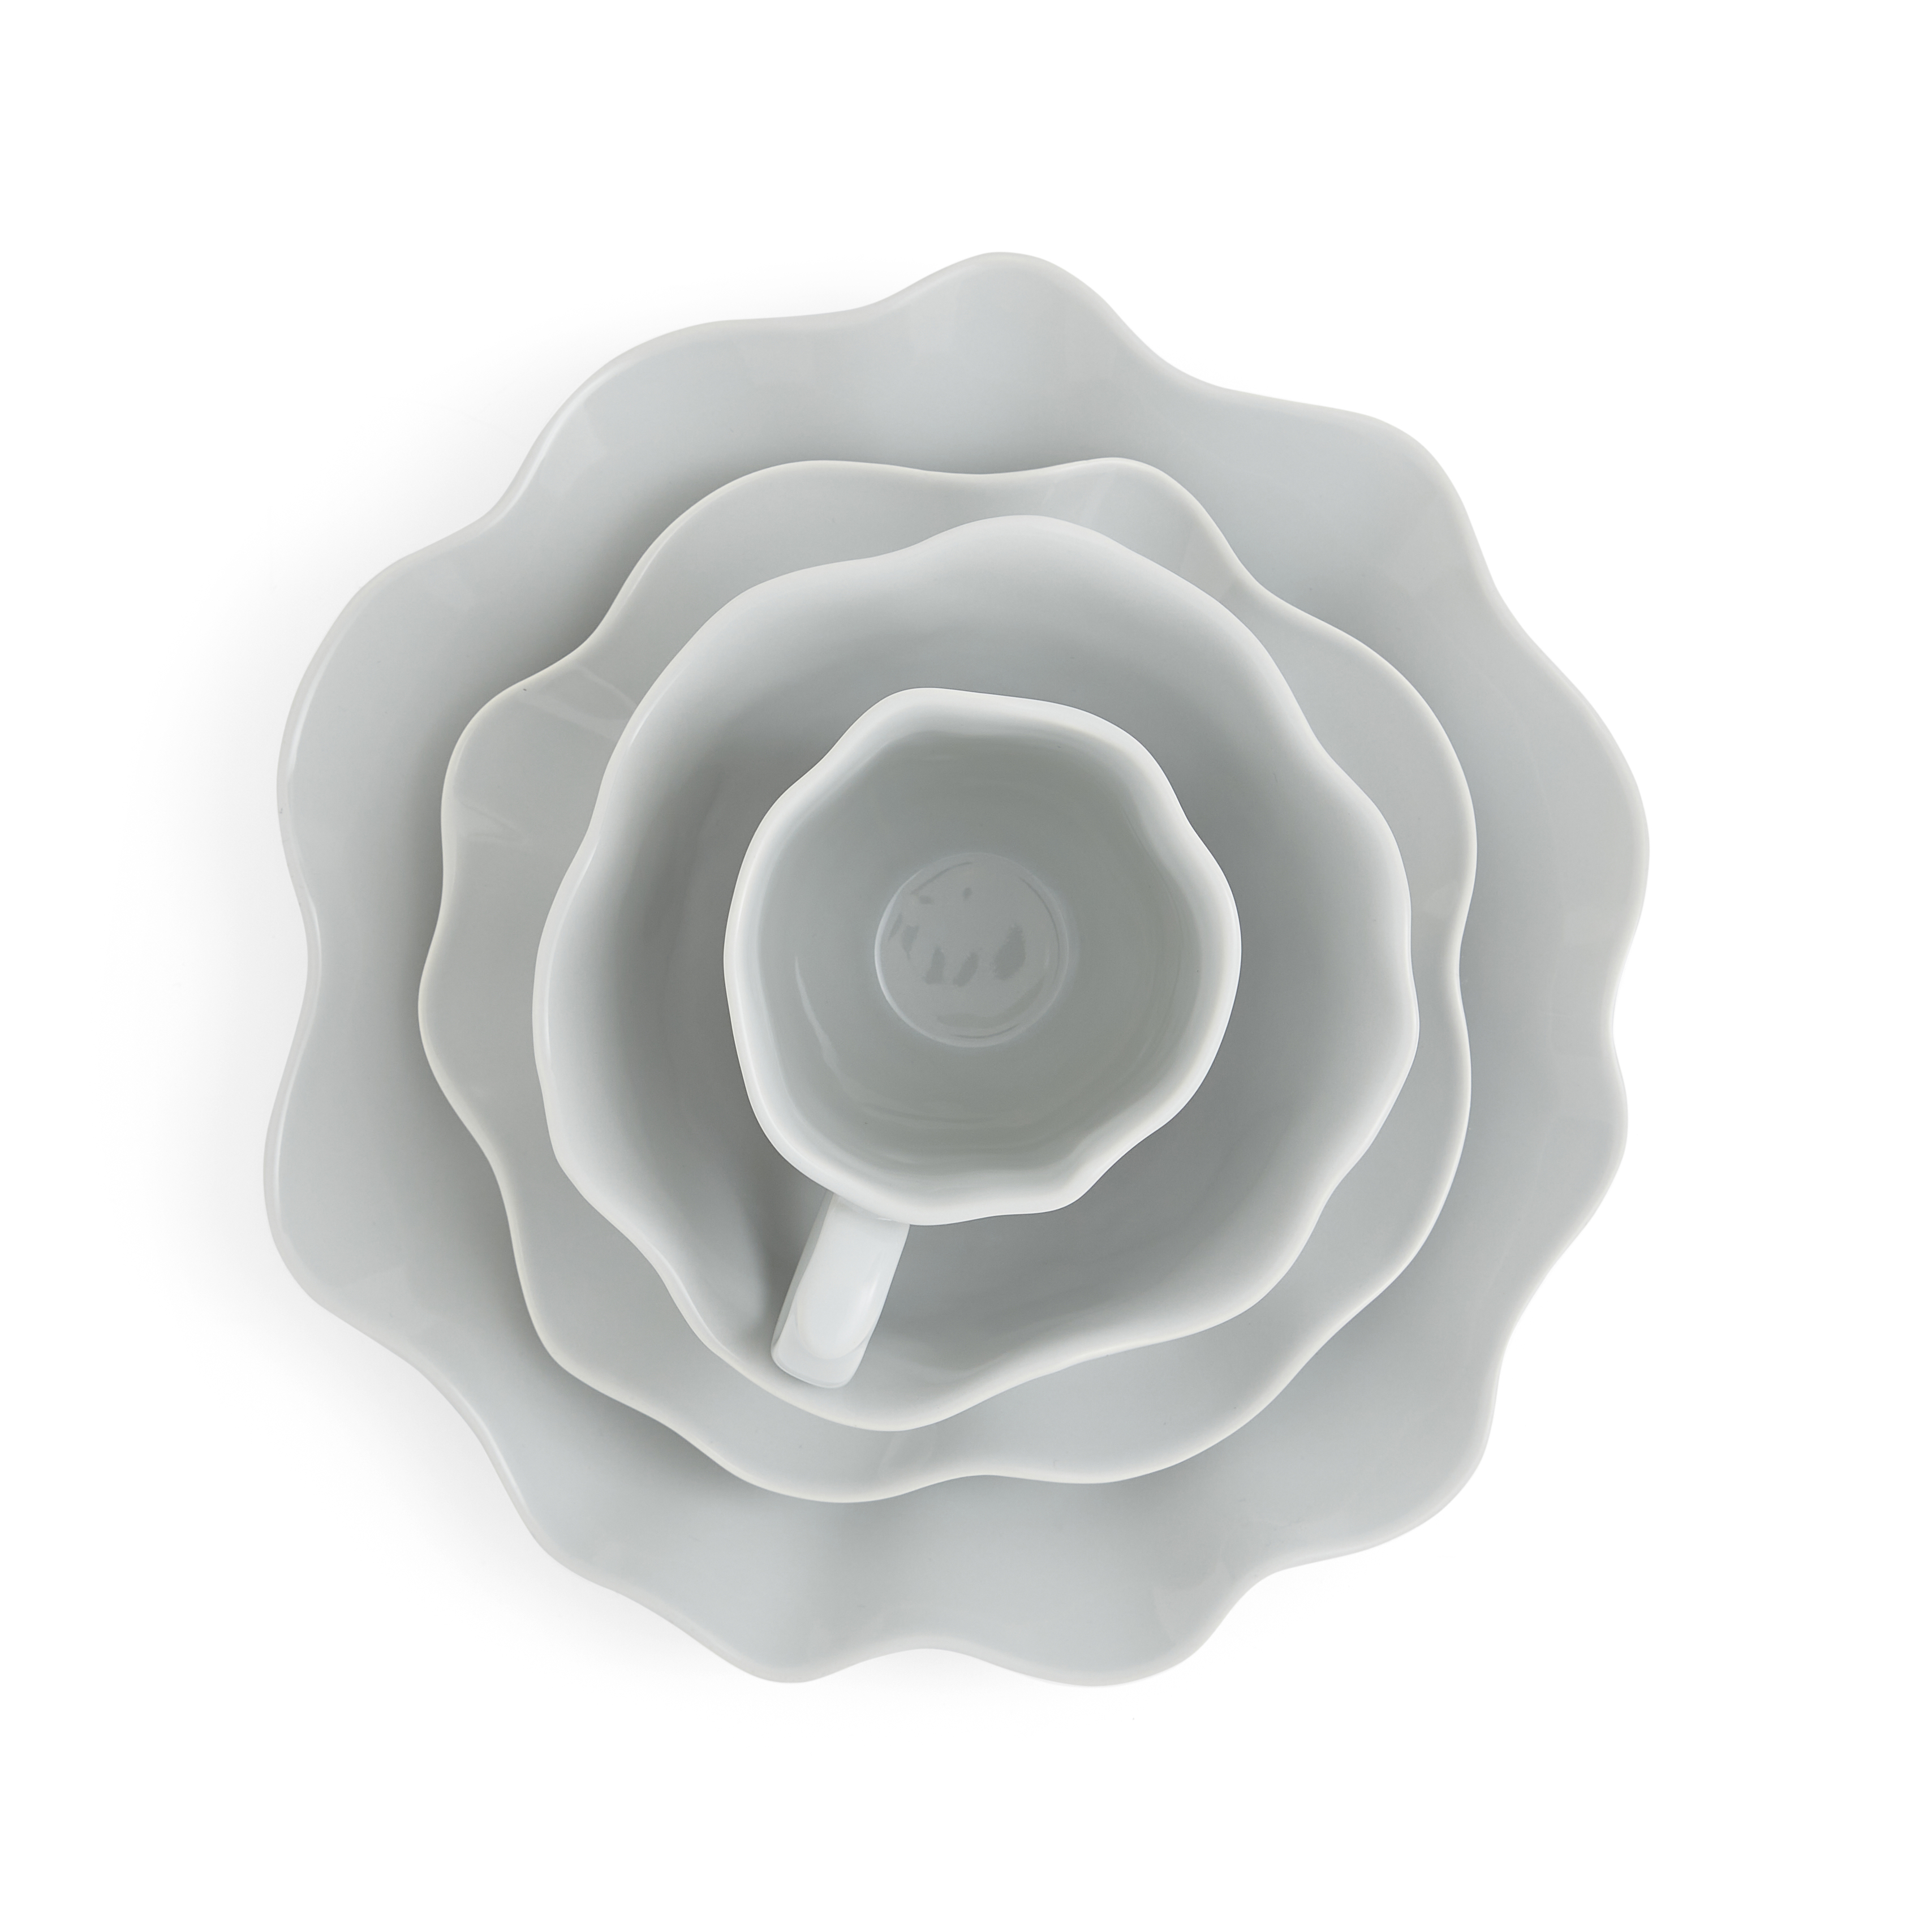 Sophie Conran Floret 4 Piece Place Setting- Dove Grey image number 1